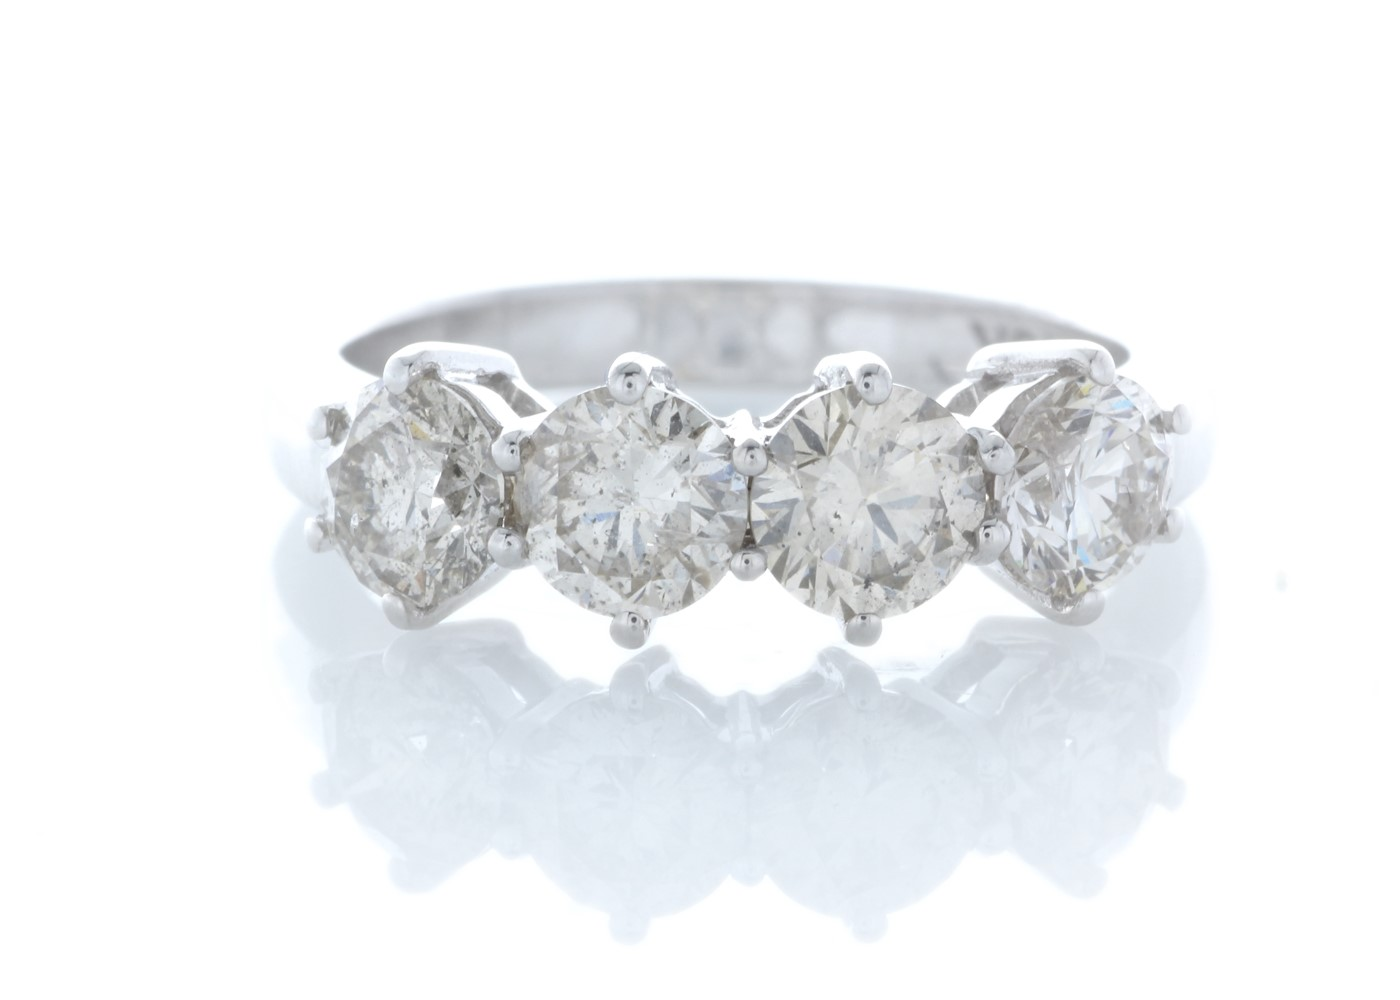 18ct White Gold Four Stone Claw Set Diamond Ring 2.10 Carats